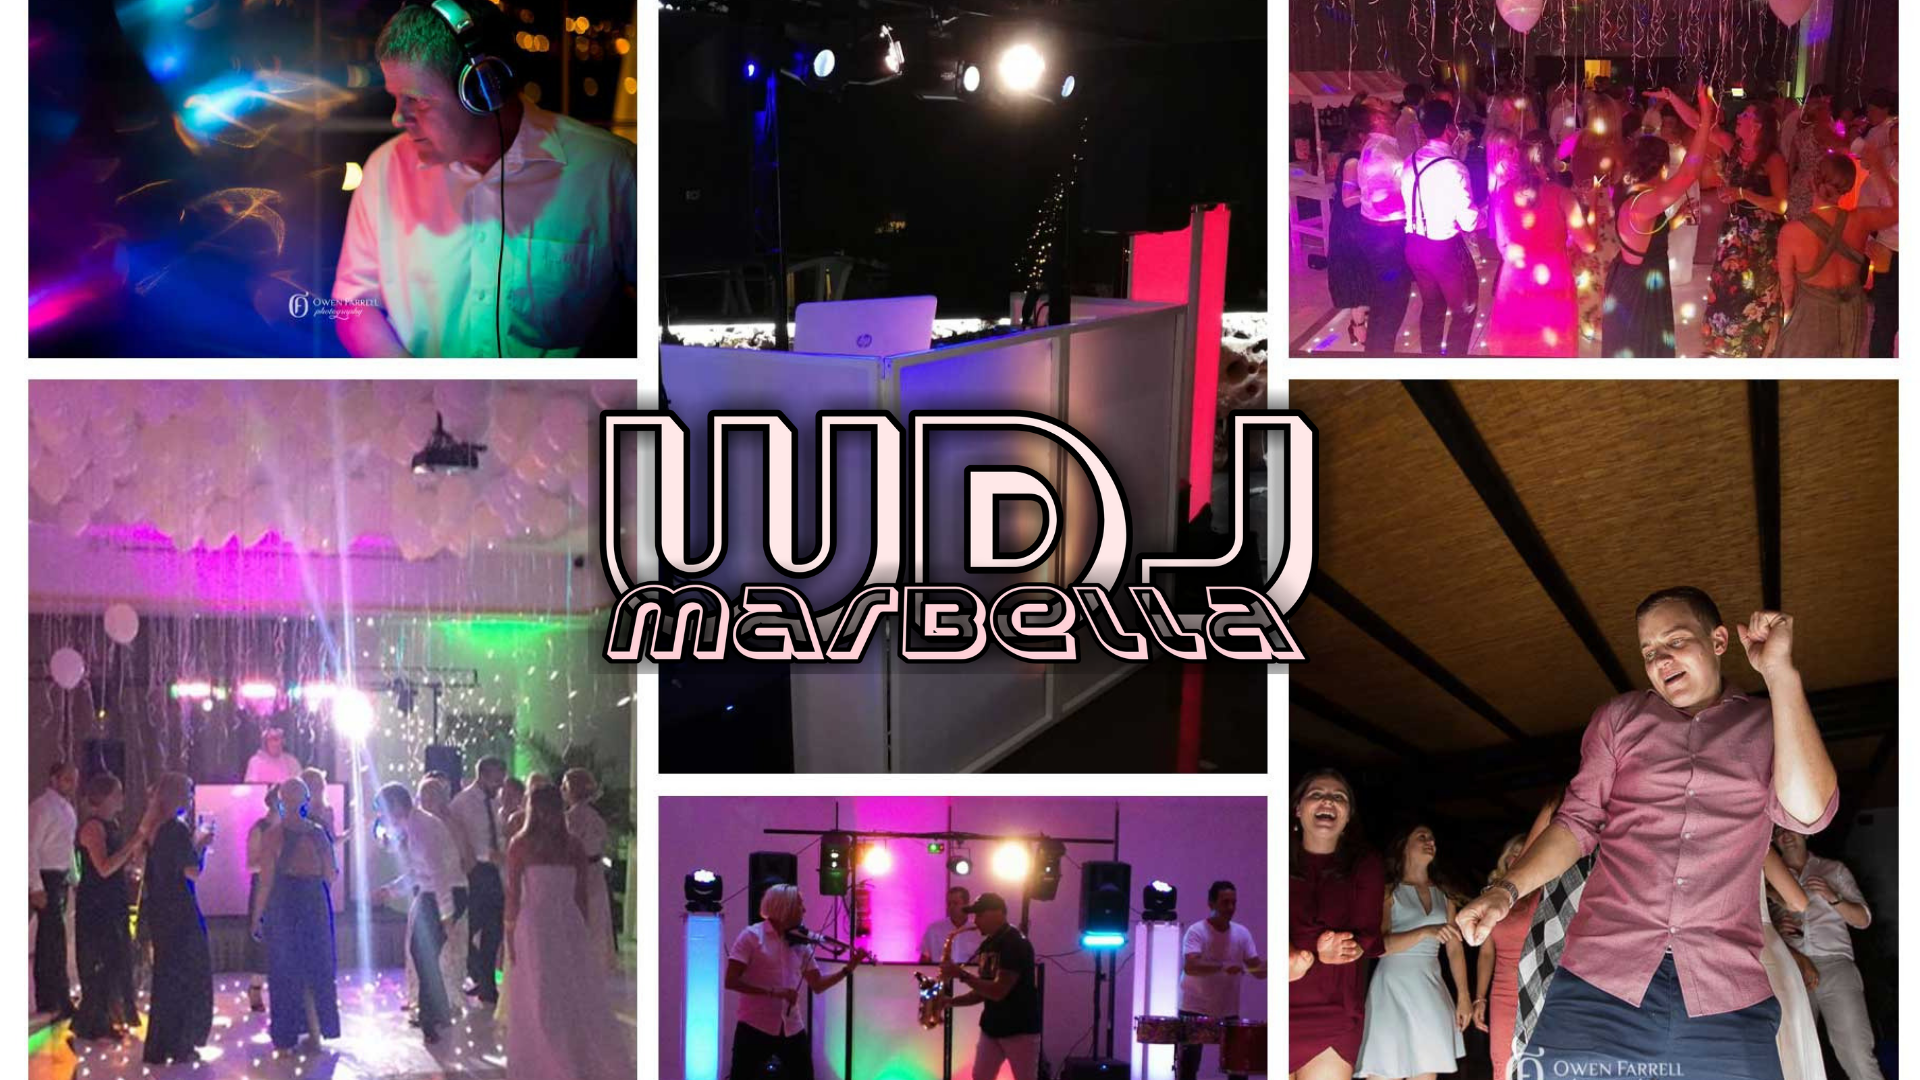 Wedding Dj Marbella